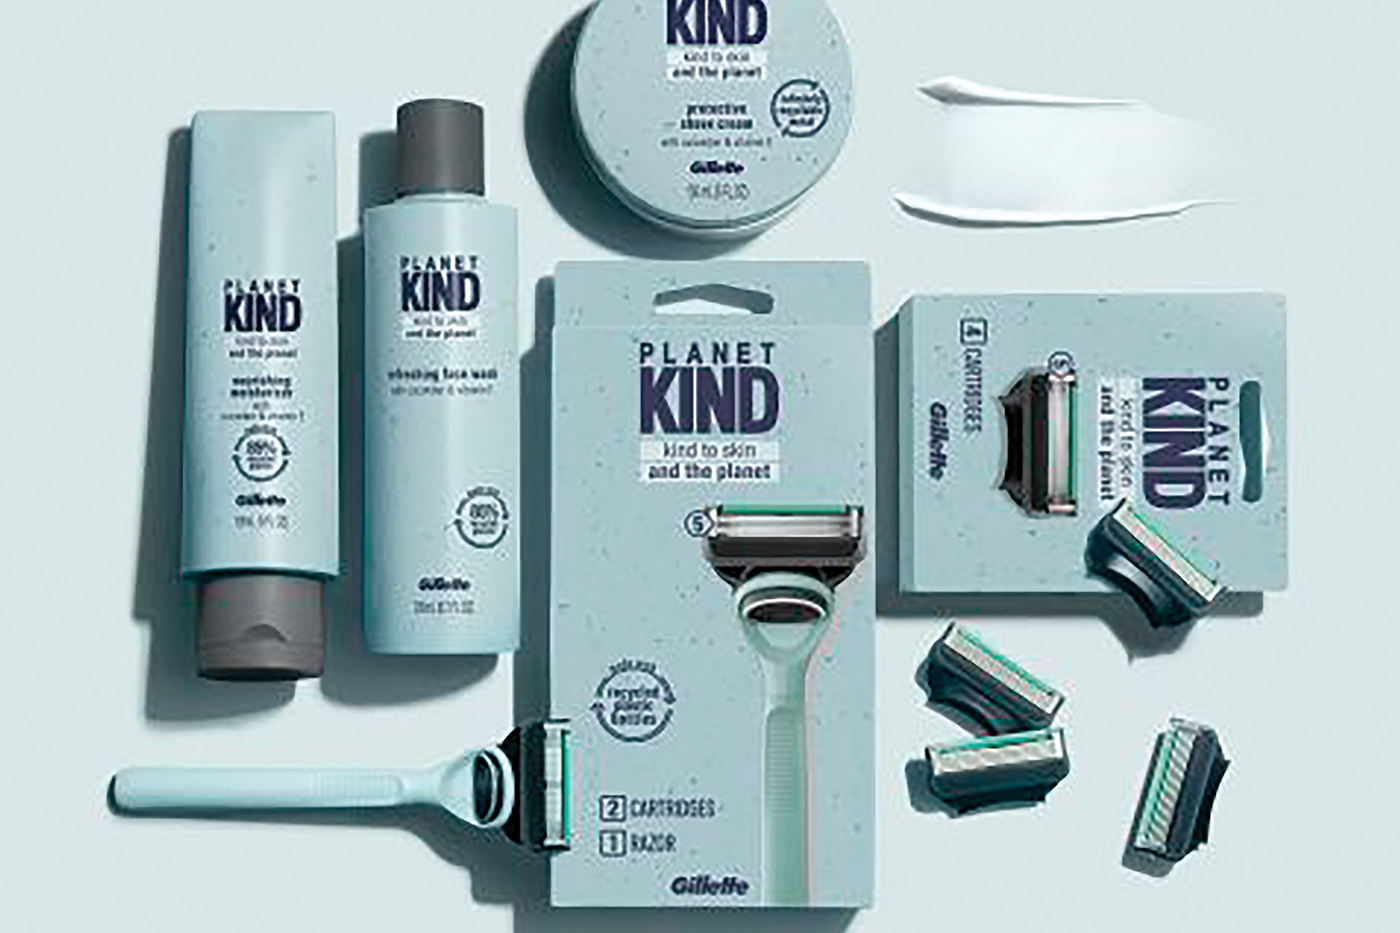 Gillette goes sustainable launches skin-friendly shaving and skincare product line